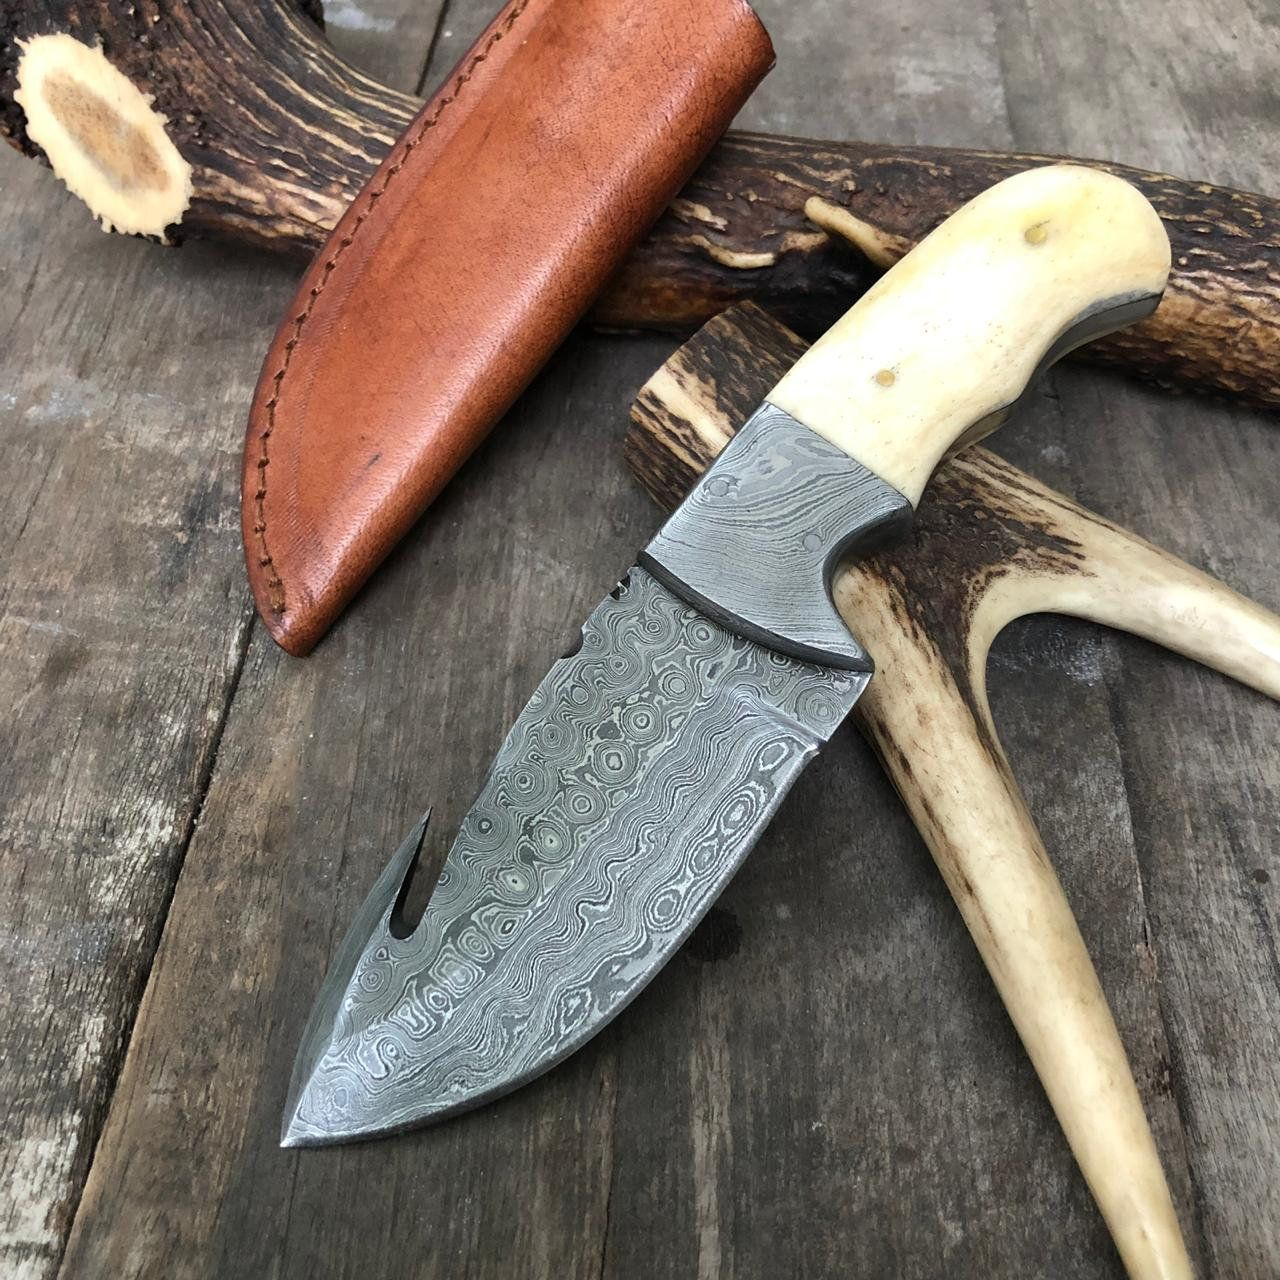 Custom Hand Forged Guanine Damascus Steel Raindrop Pattern Hunting Gut Hook Knife 352 True Layers Hkp 110 Damascus Steel Skinning Knife Hand Forged